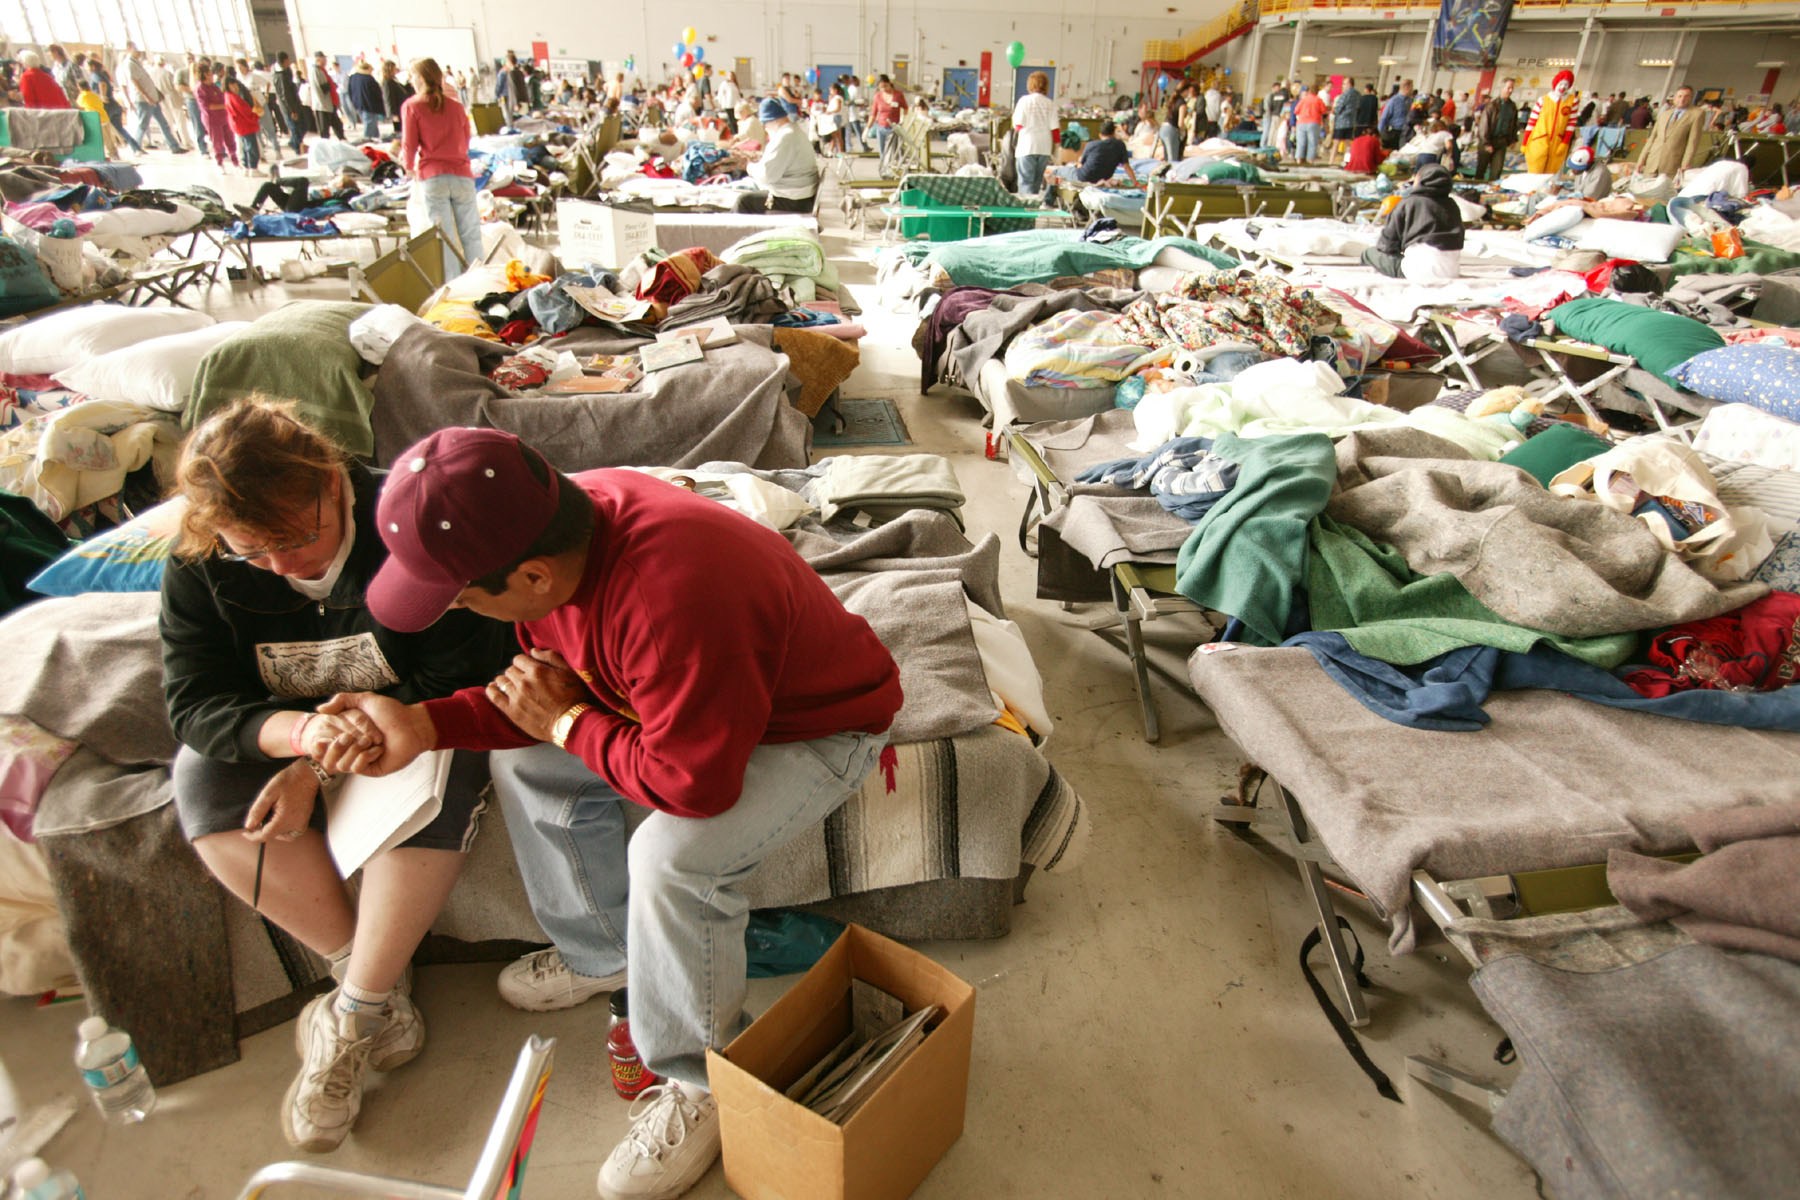 The Increasing Importance of Disaster Medicine